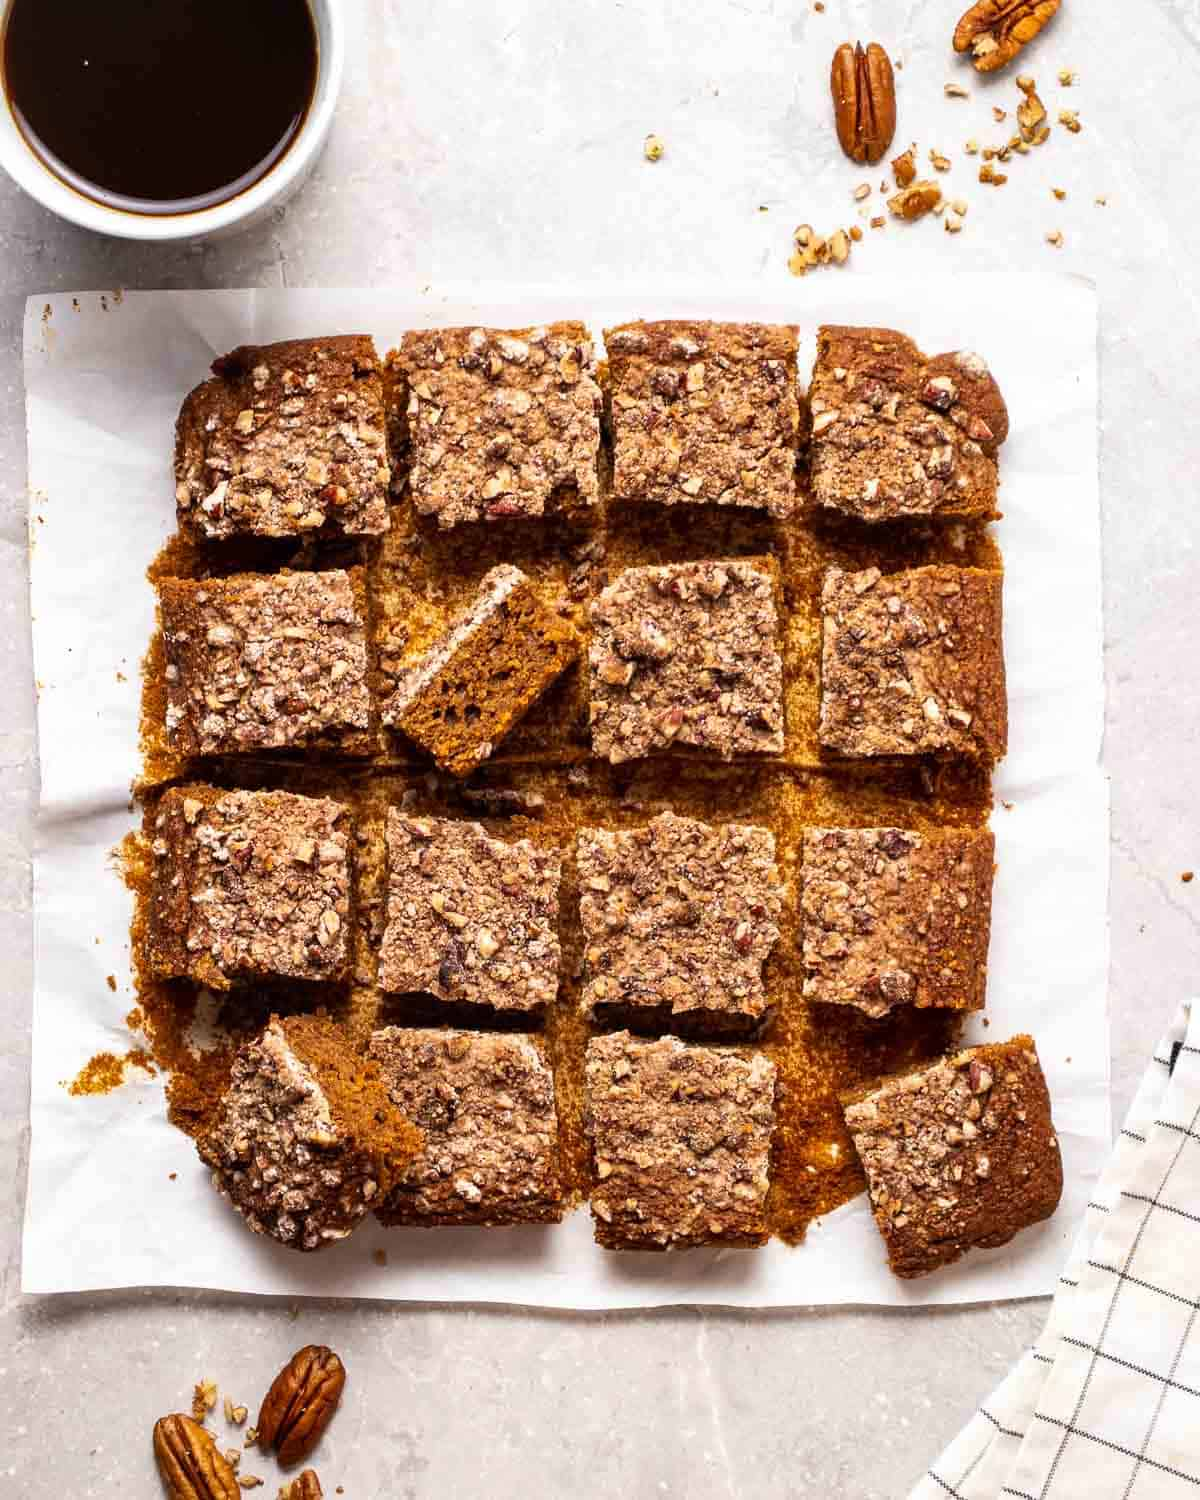 A tray of sliced coffee cake on parchment paper with a cup of coffee and pecans in the background.